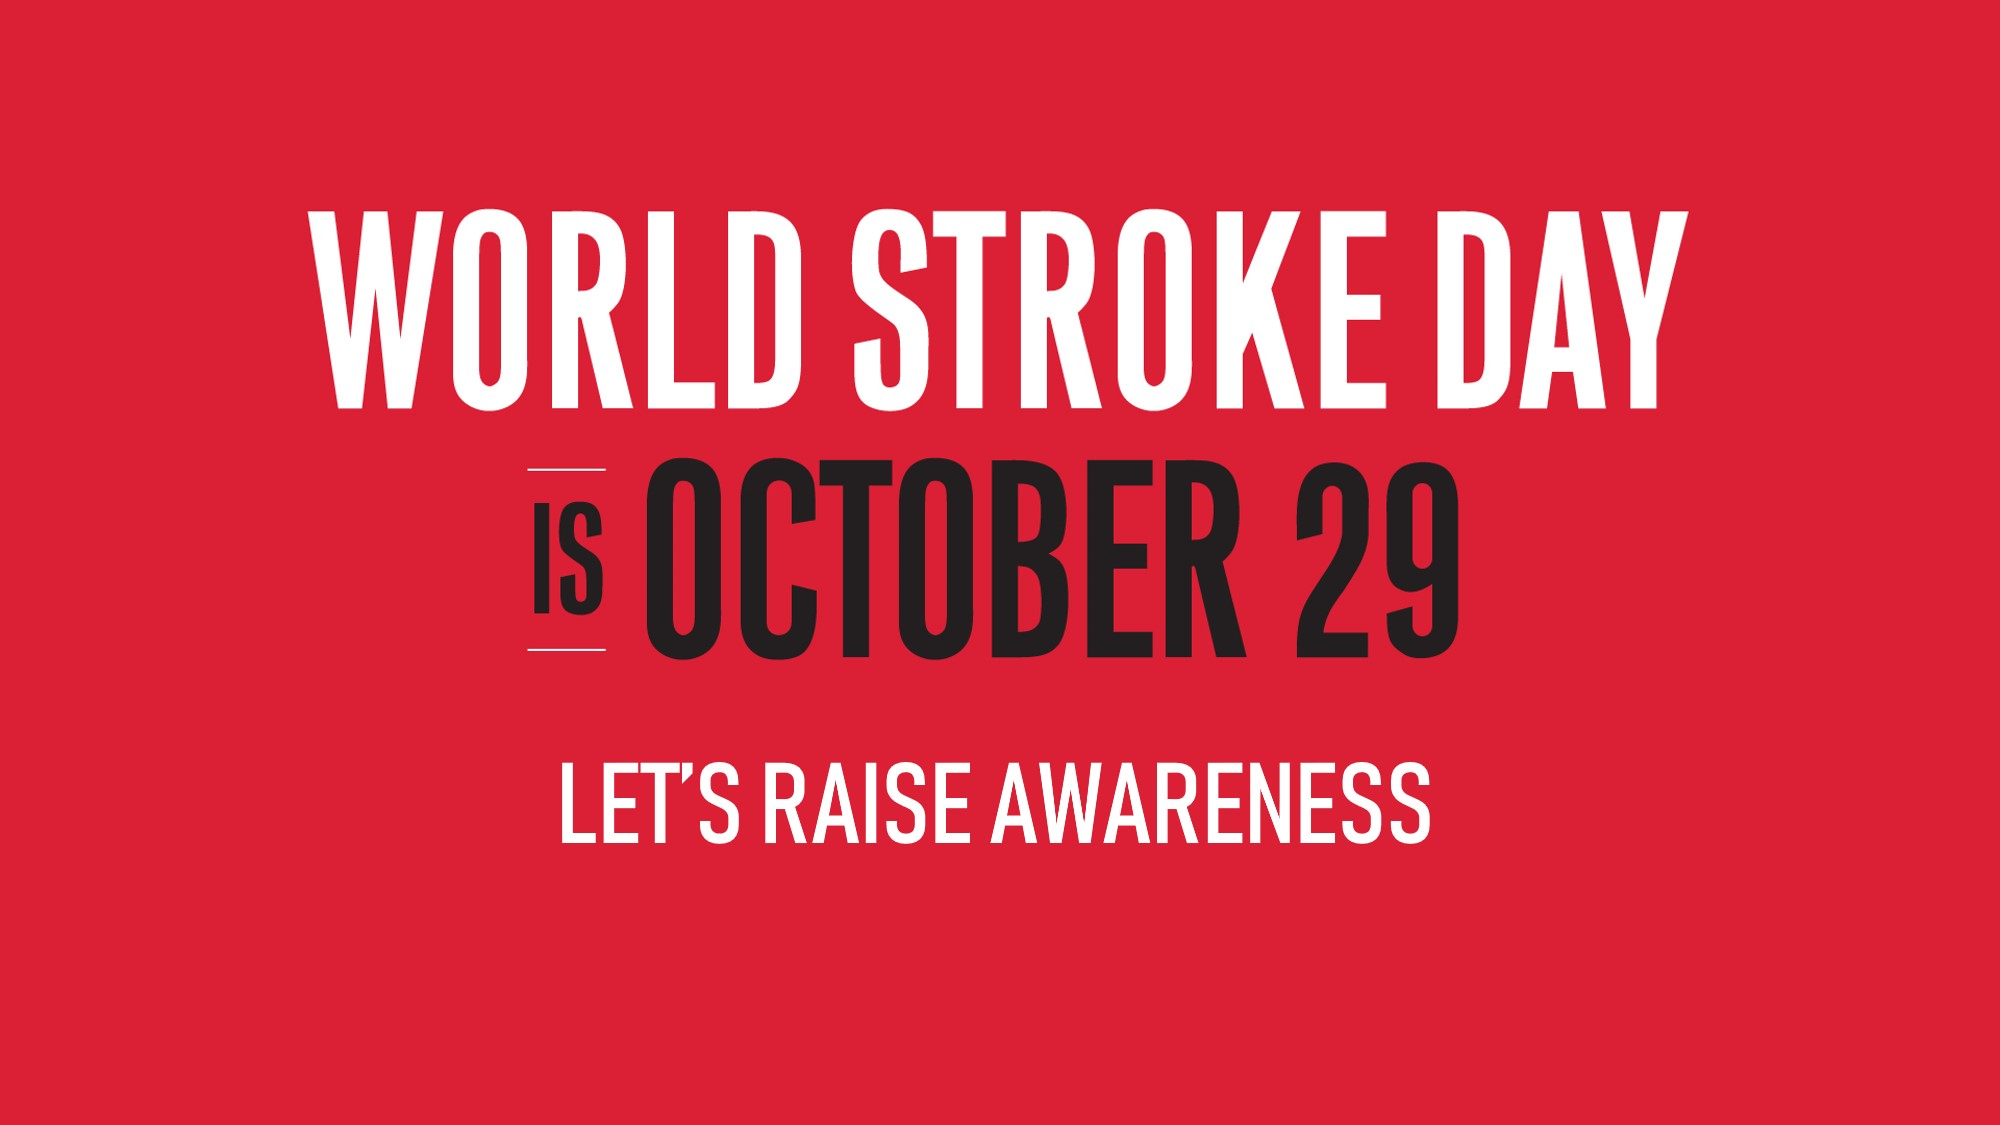 STROKE_AWARENESS